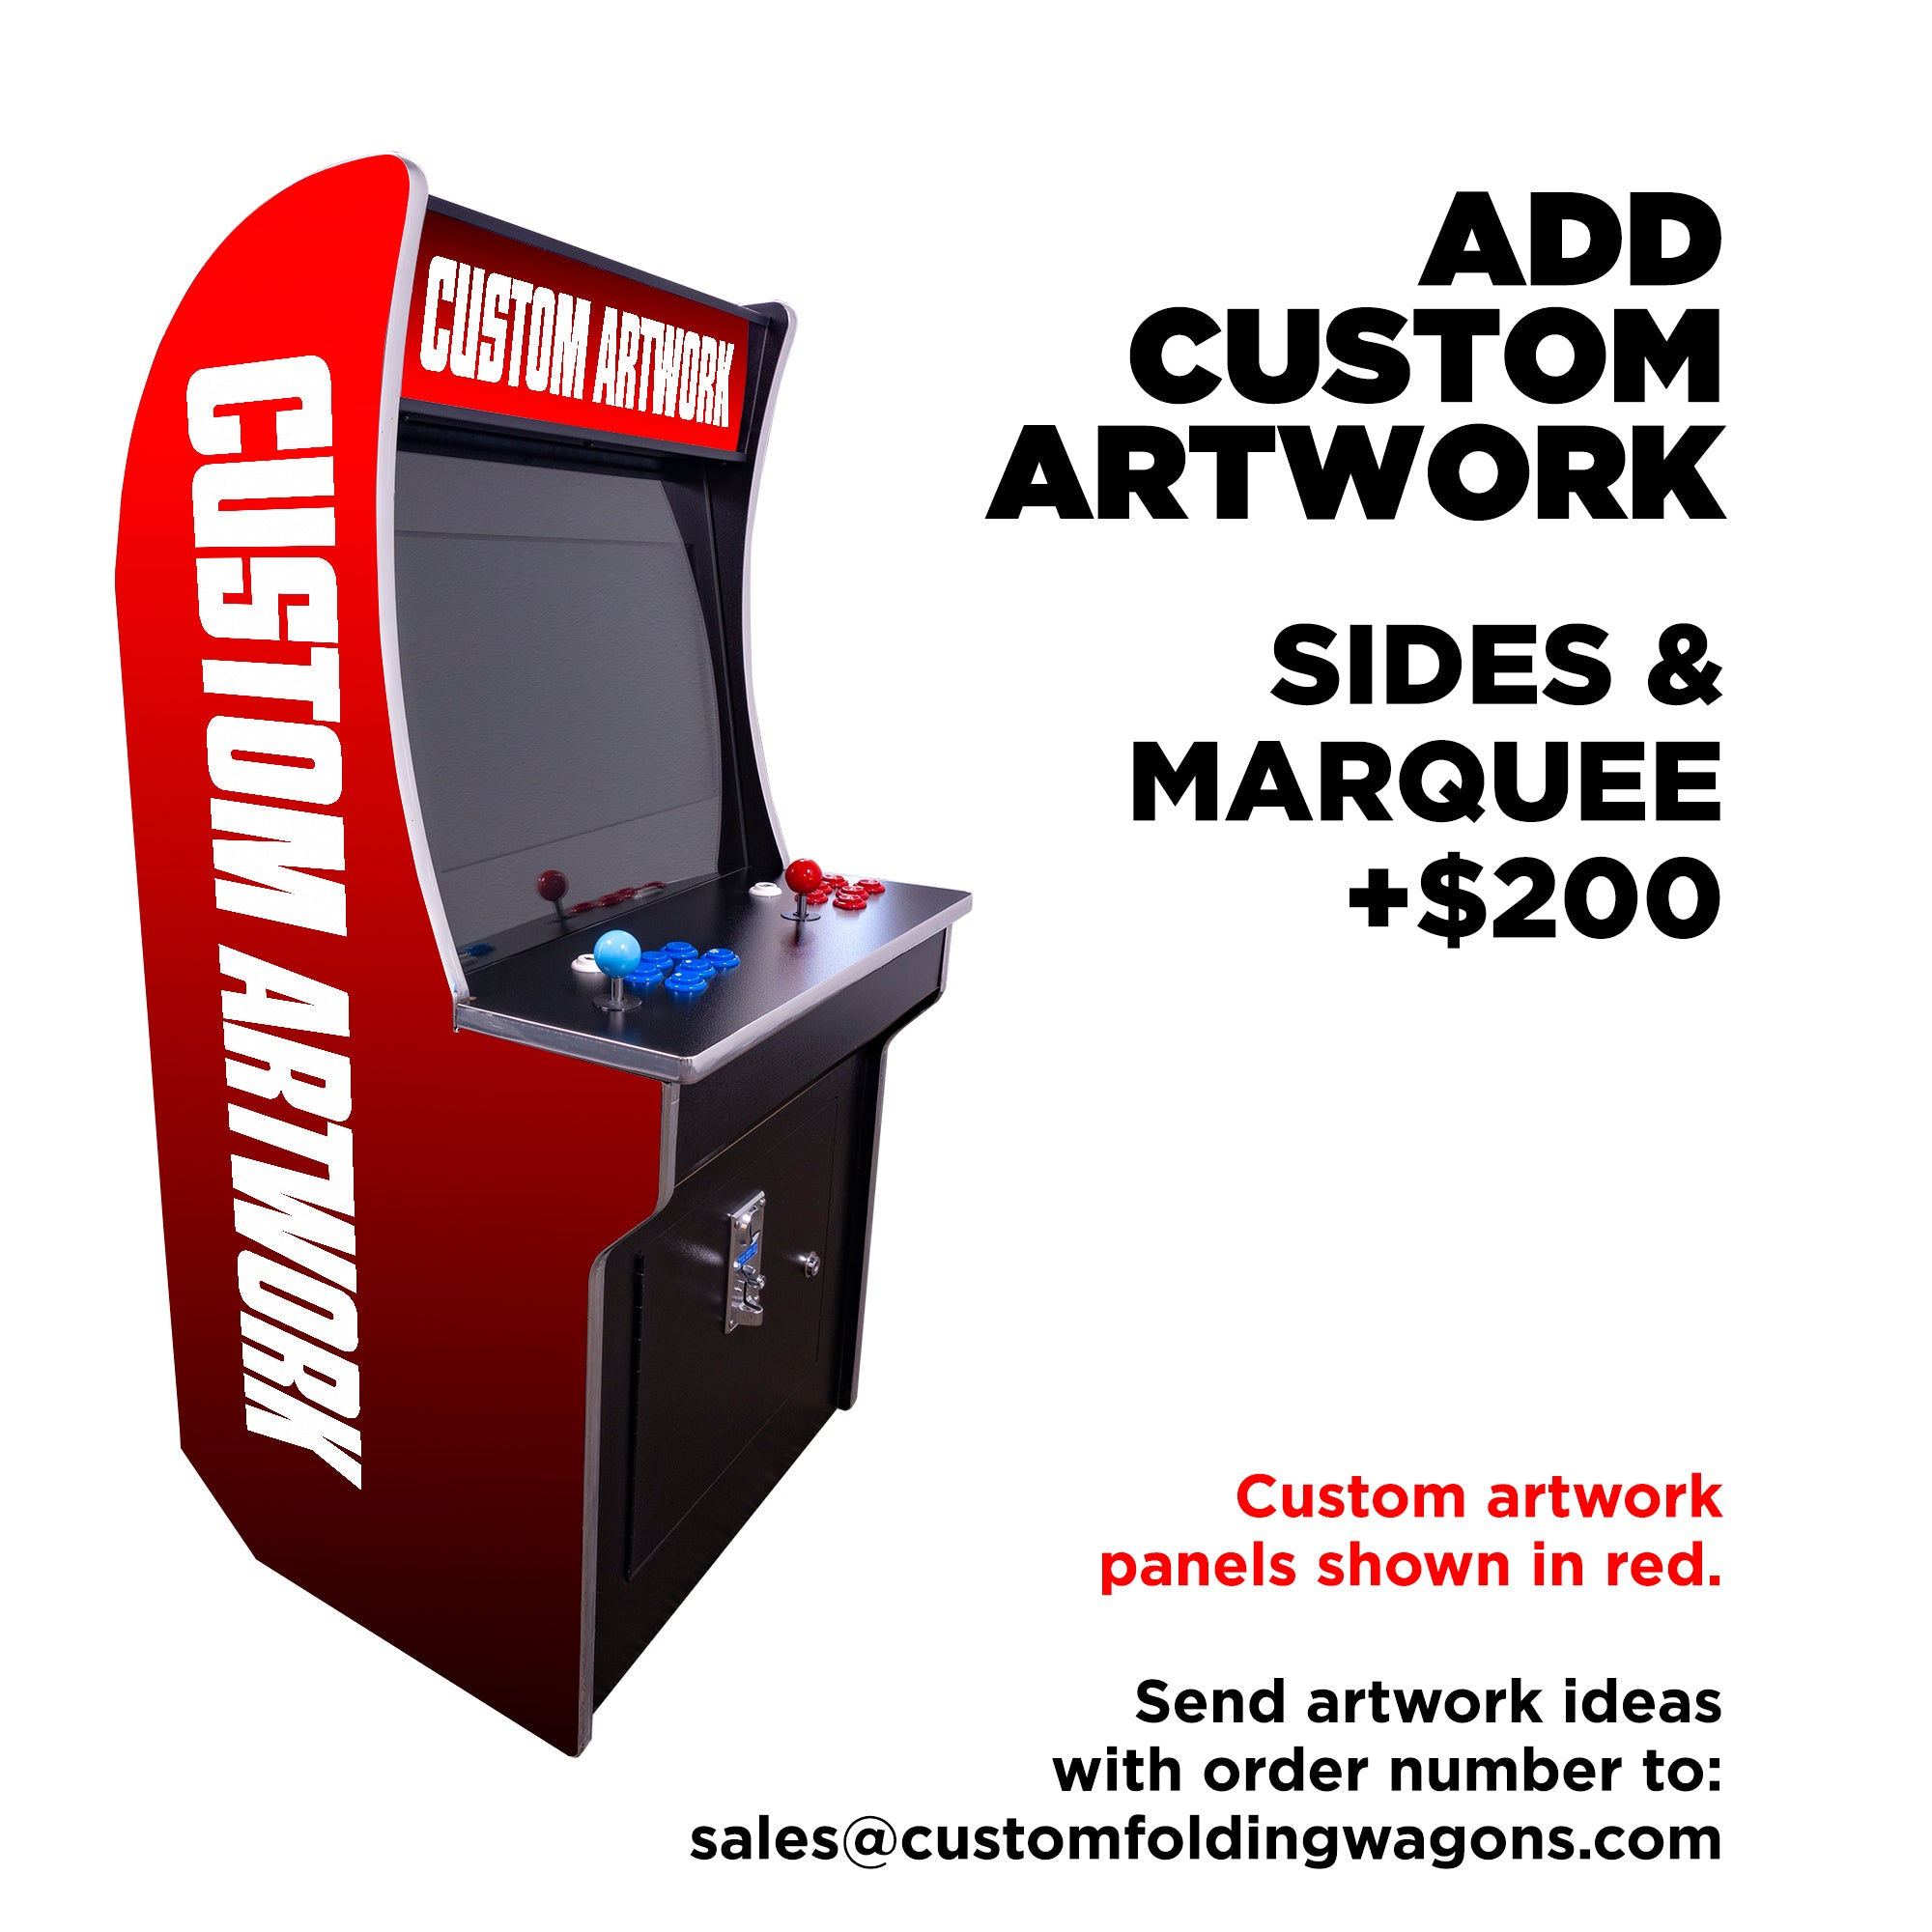 151023 Mini Kids Arcade 2323 Games Custom Artwork Sides Marquee